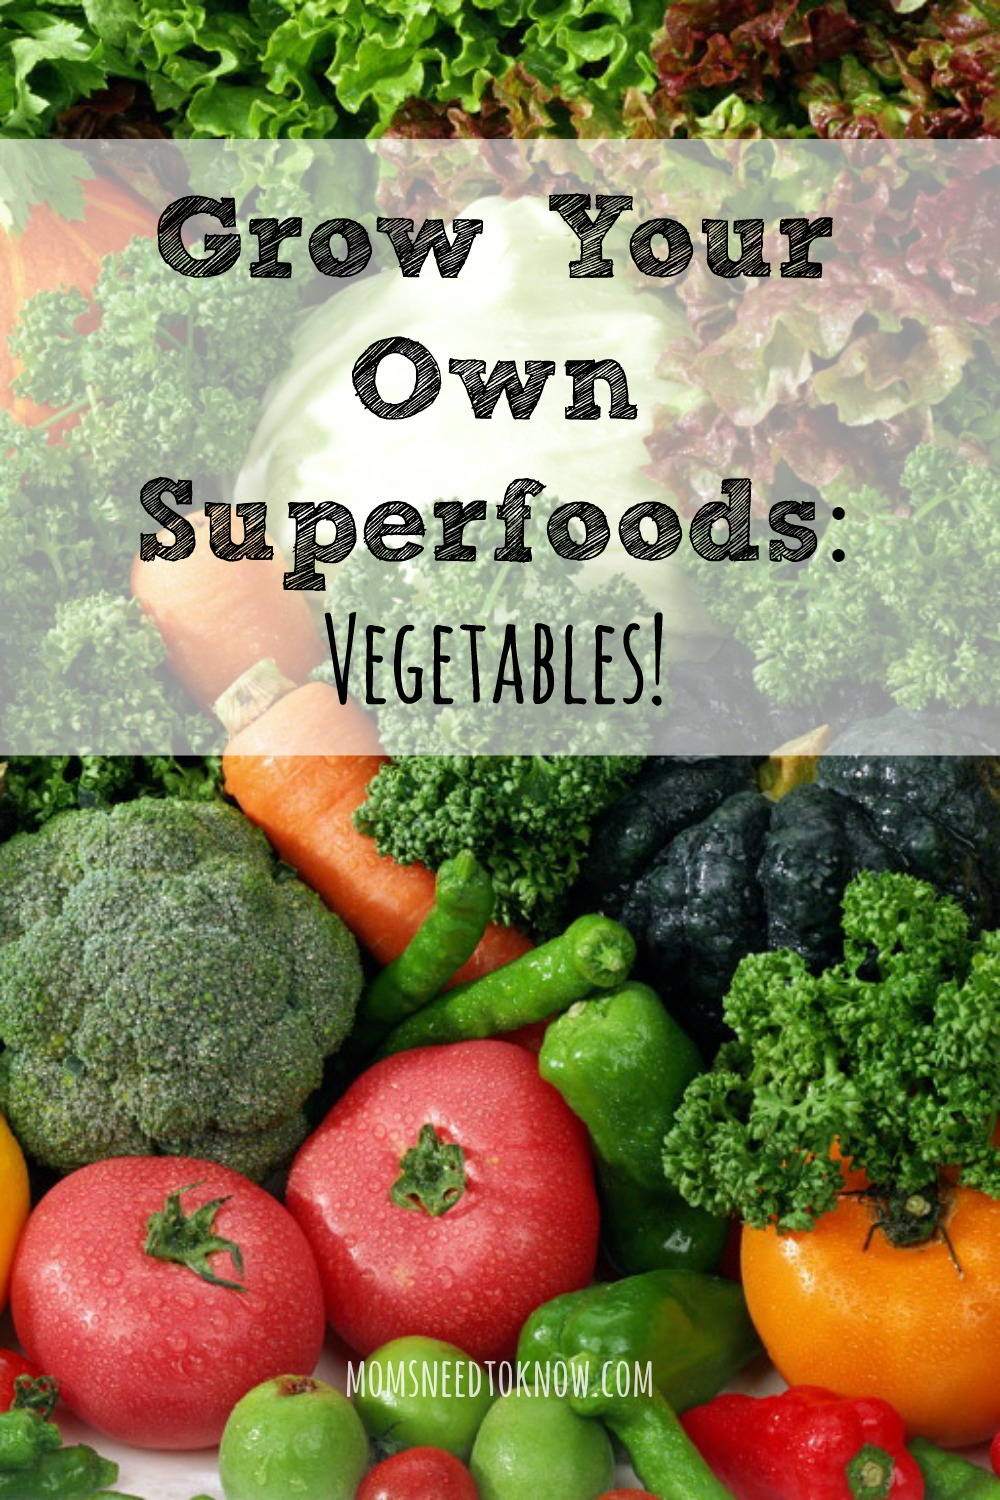 How To Grow Your Own Superfoods - Vegetables